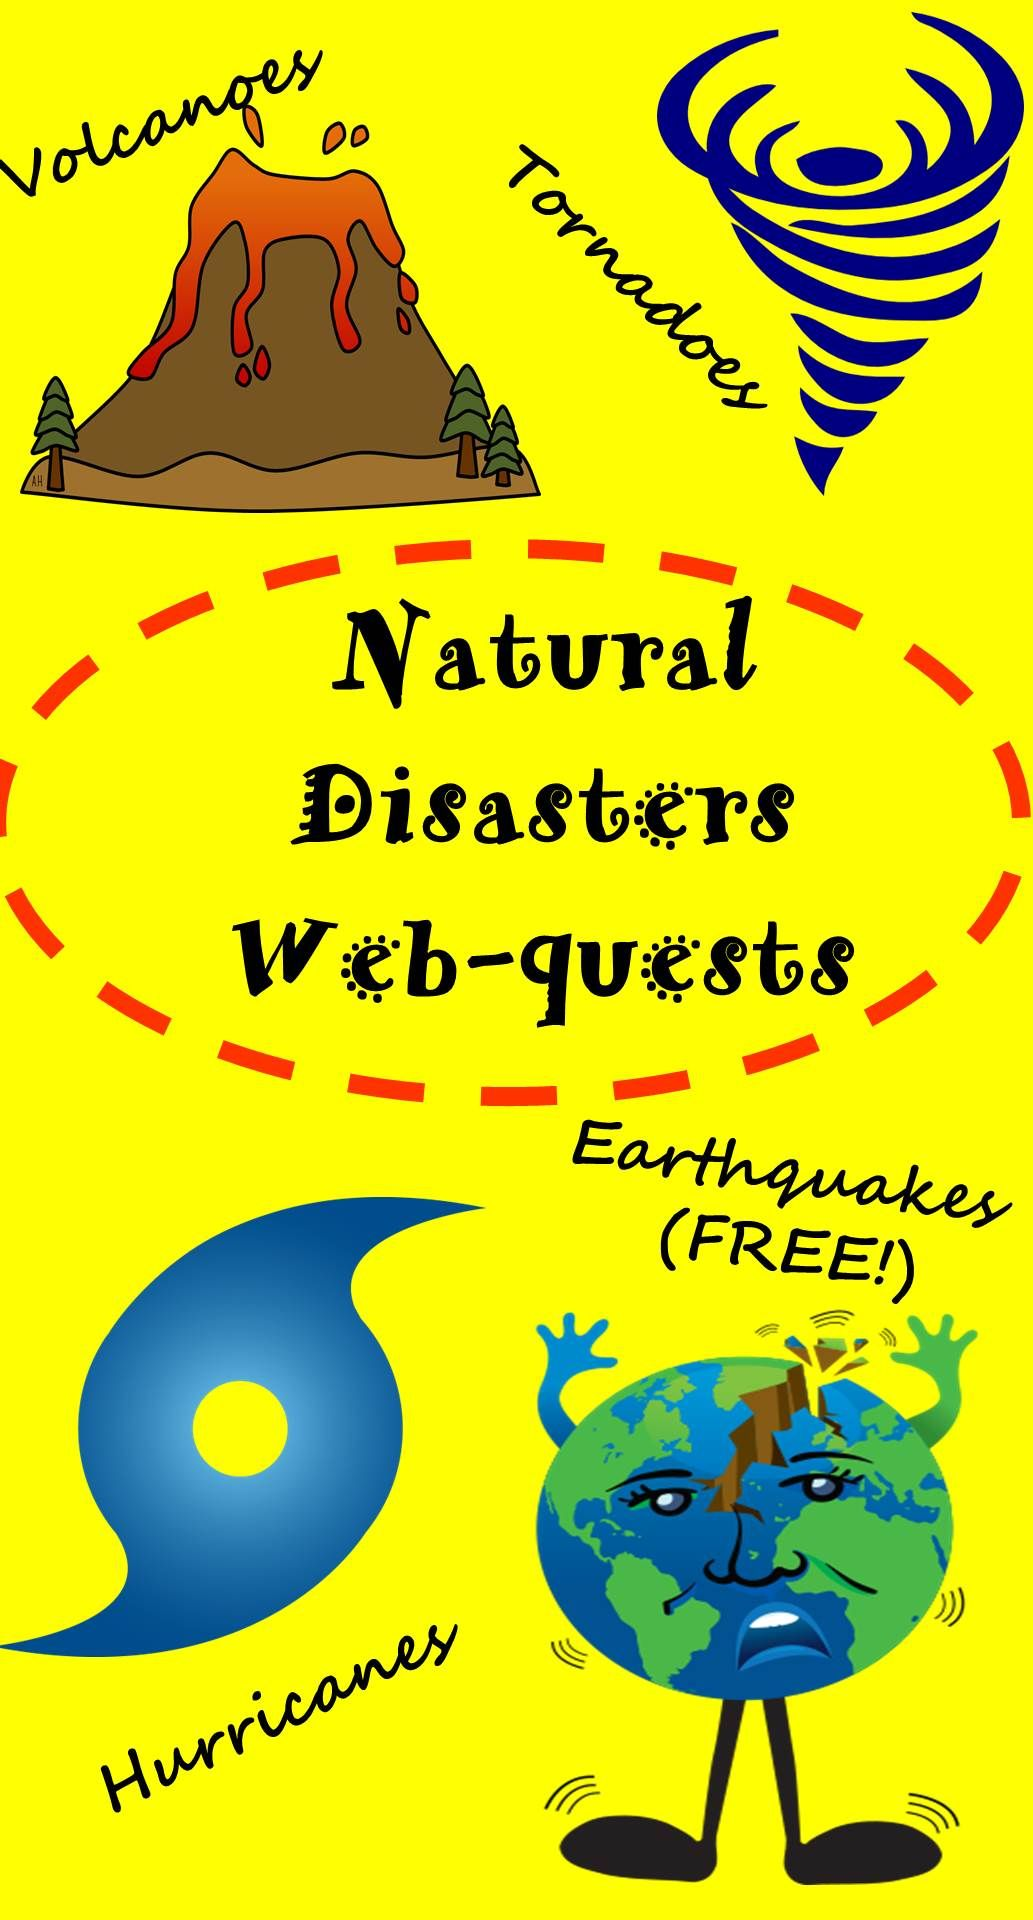 an essay on natural disasters english compulsory b sc st annual  report outline natural disasters writing an essay different natural disaster webquests hurricanes tornadoes and volcanoes